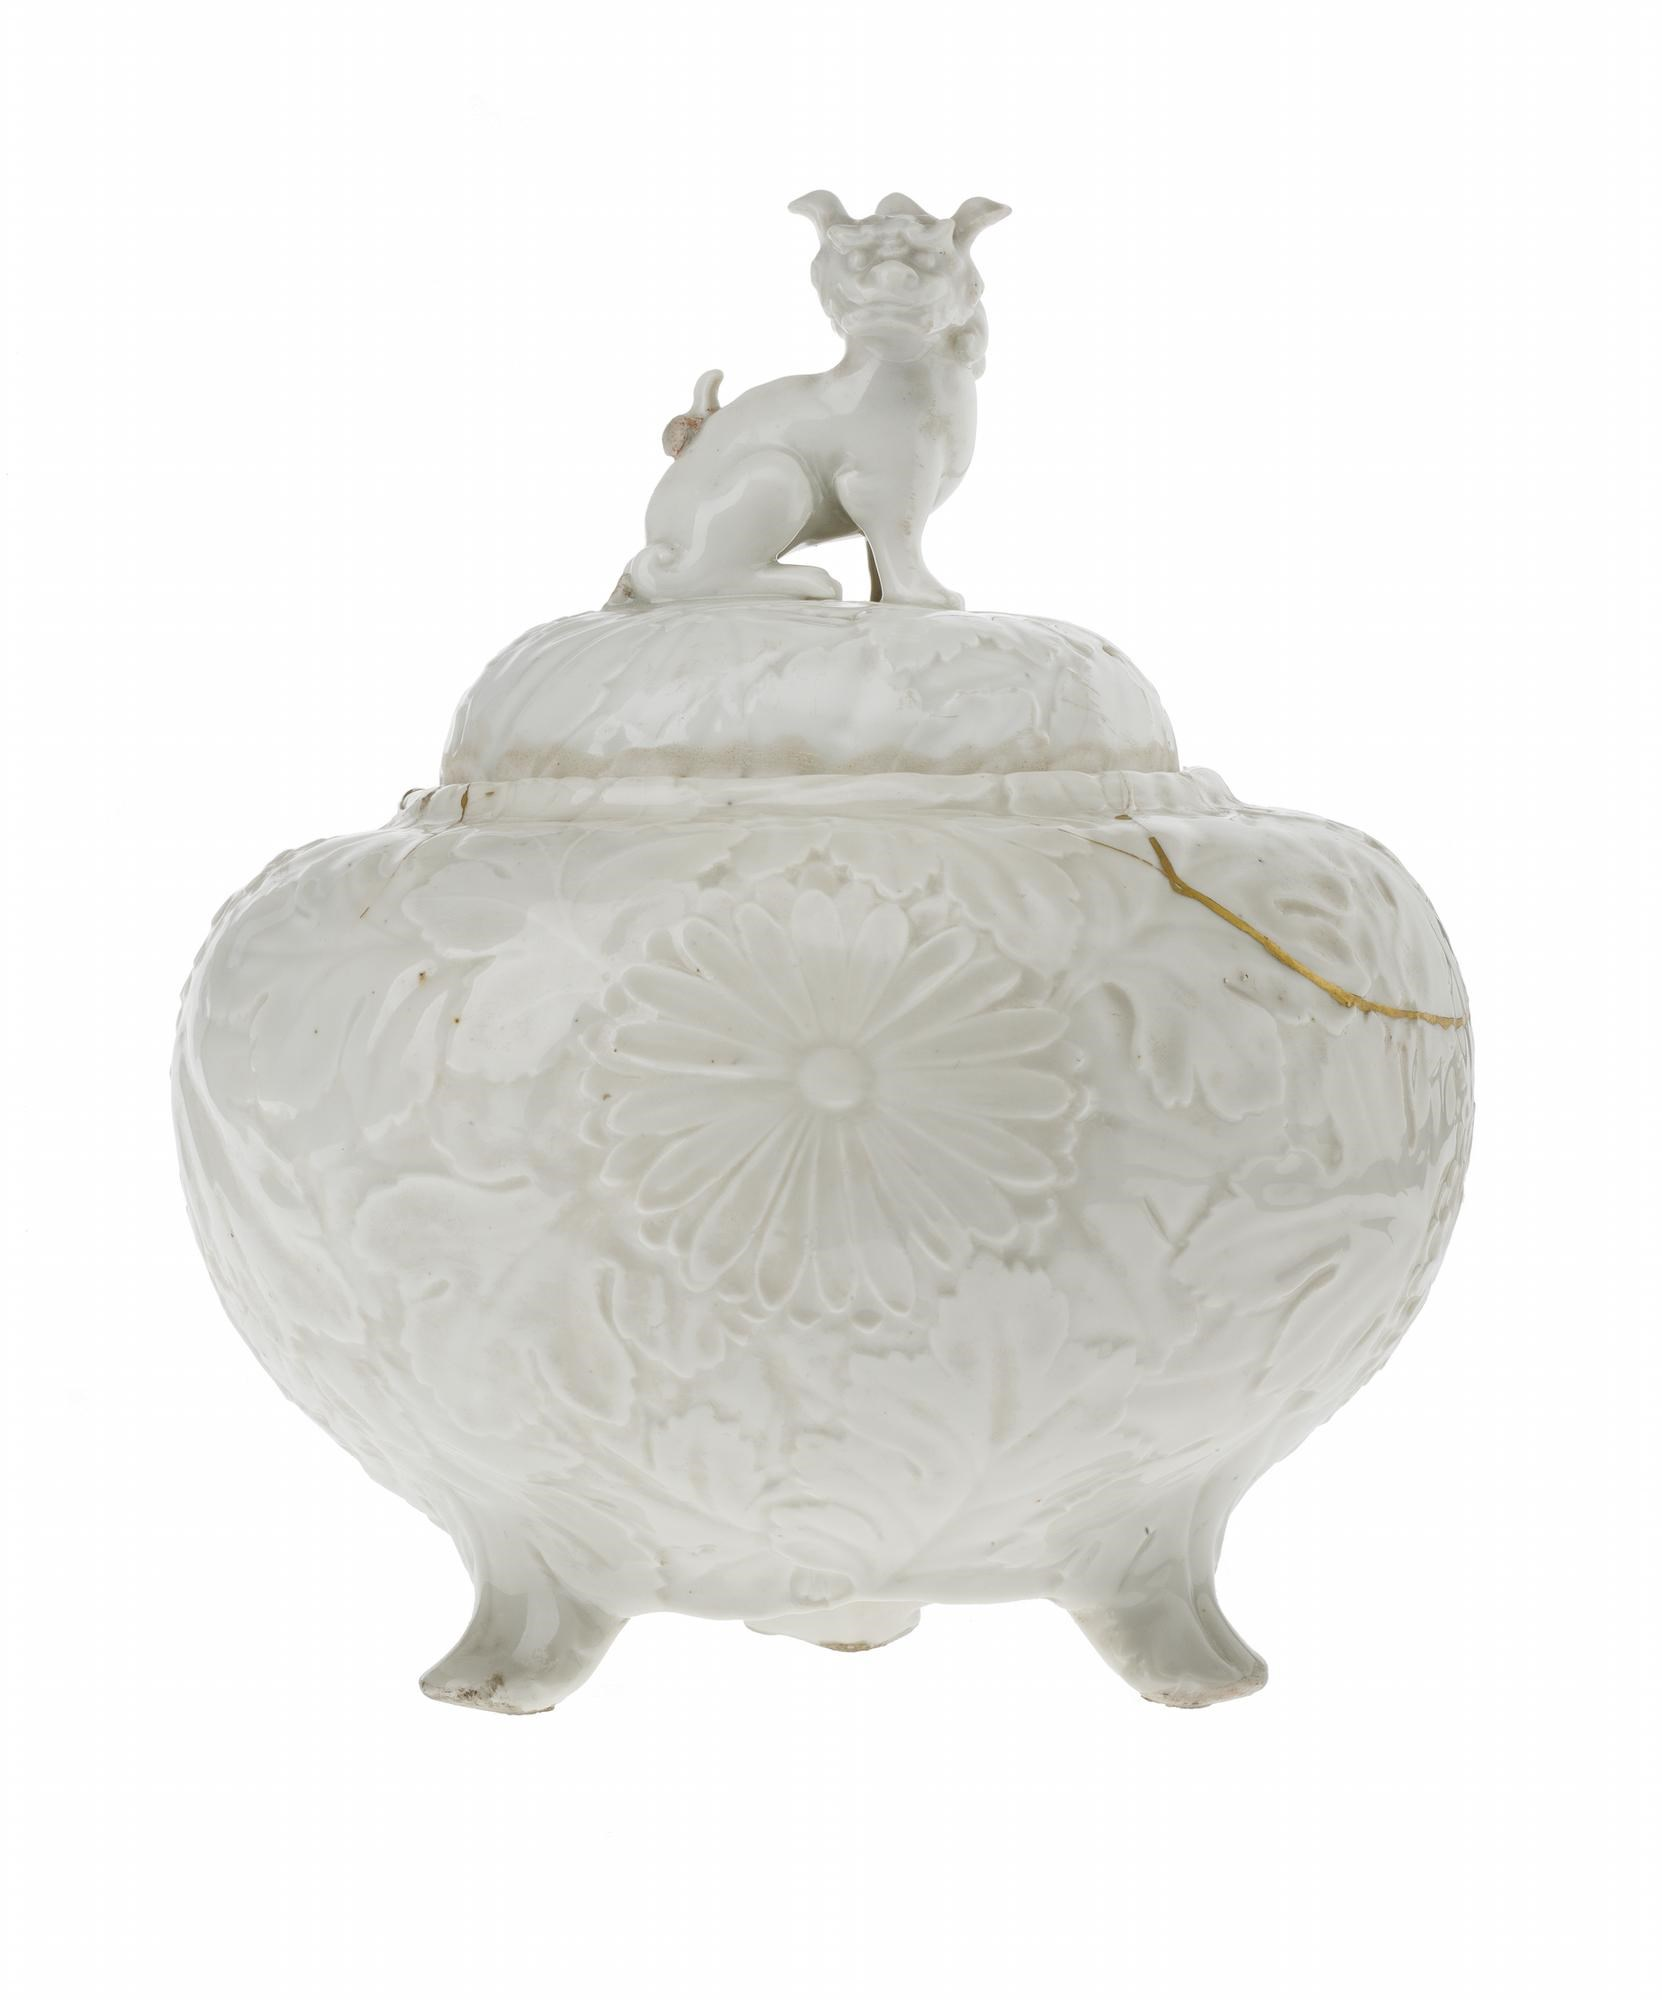 Jar and cover of porcelain with white glaze, bulbous and tripod, moulded with chrysanthemums in relief, lion-dog knop on cover, broken and repaired with gold lacquer: Korea, 18th century.